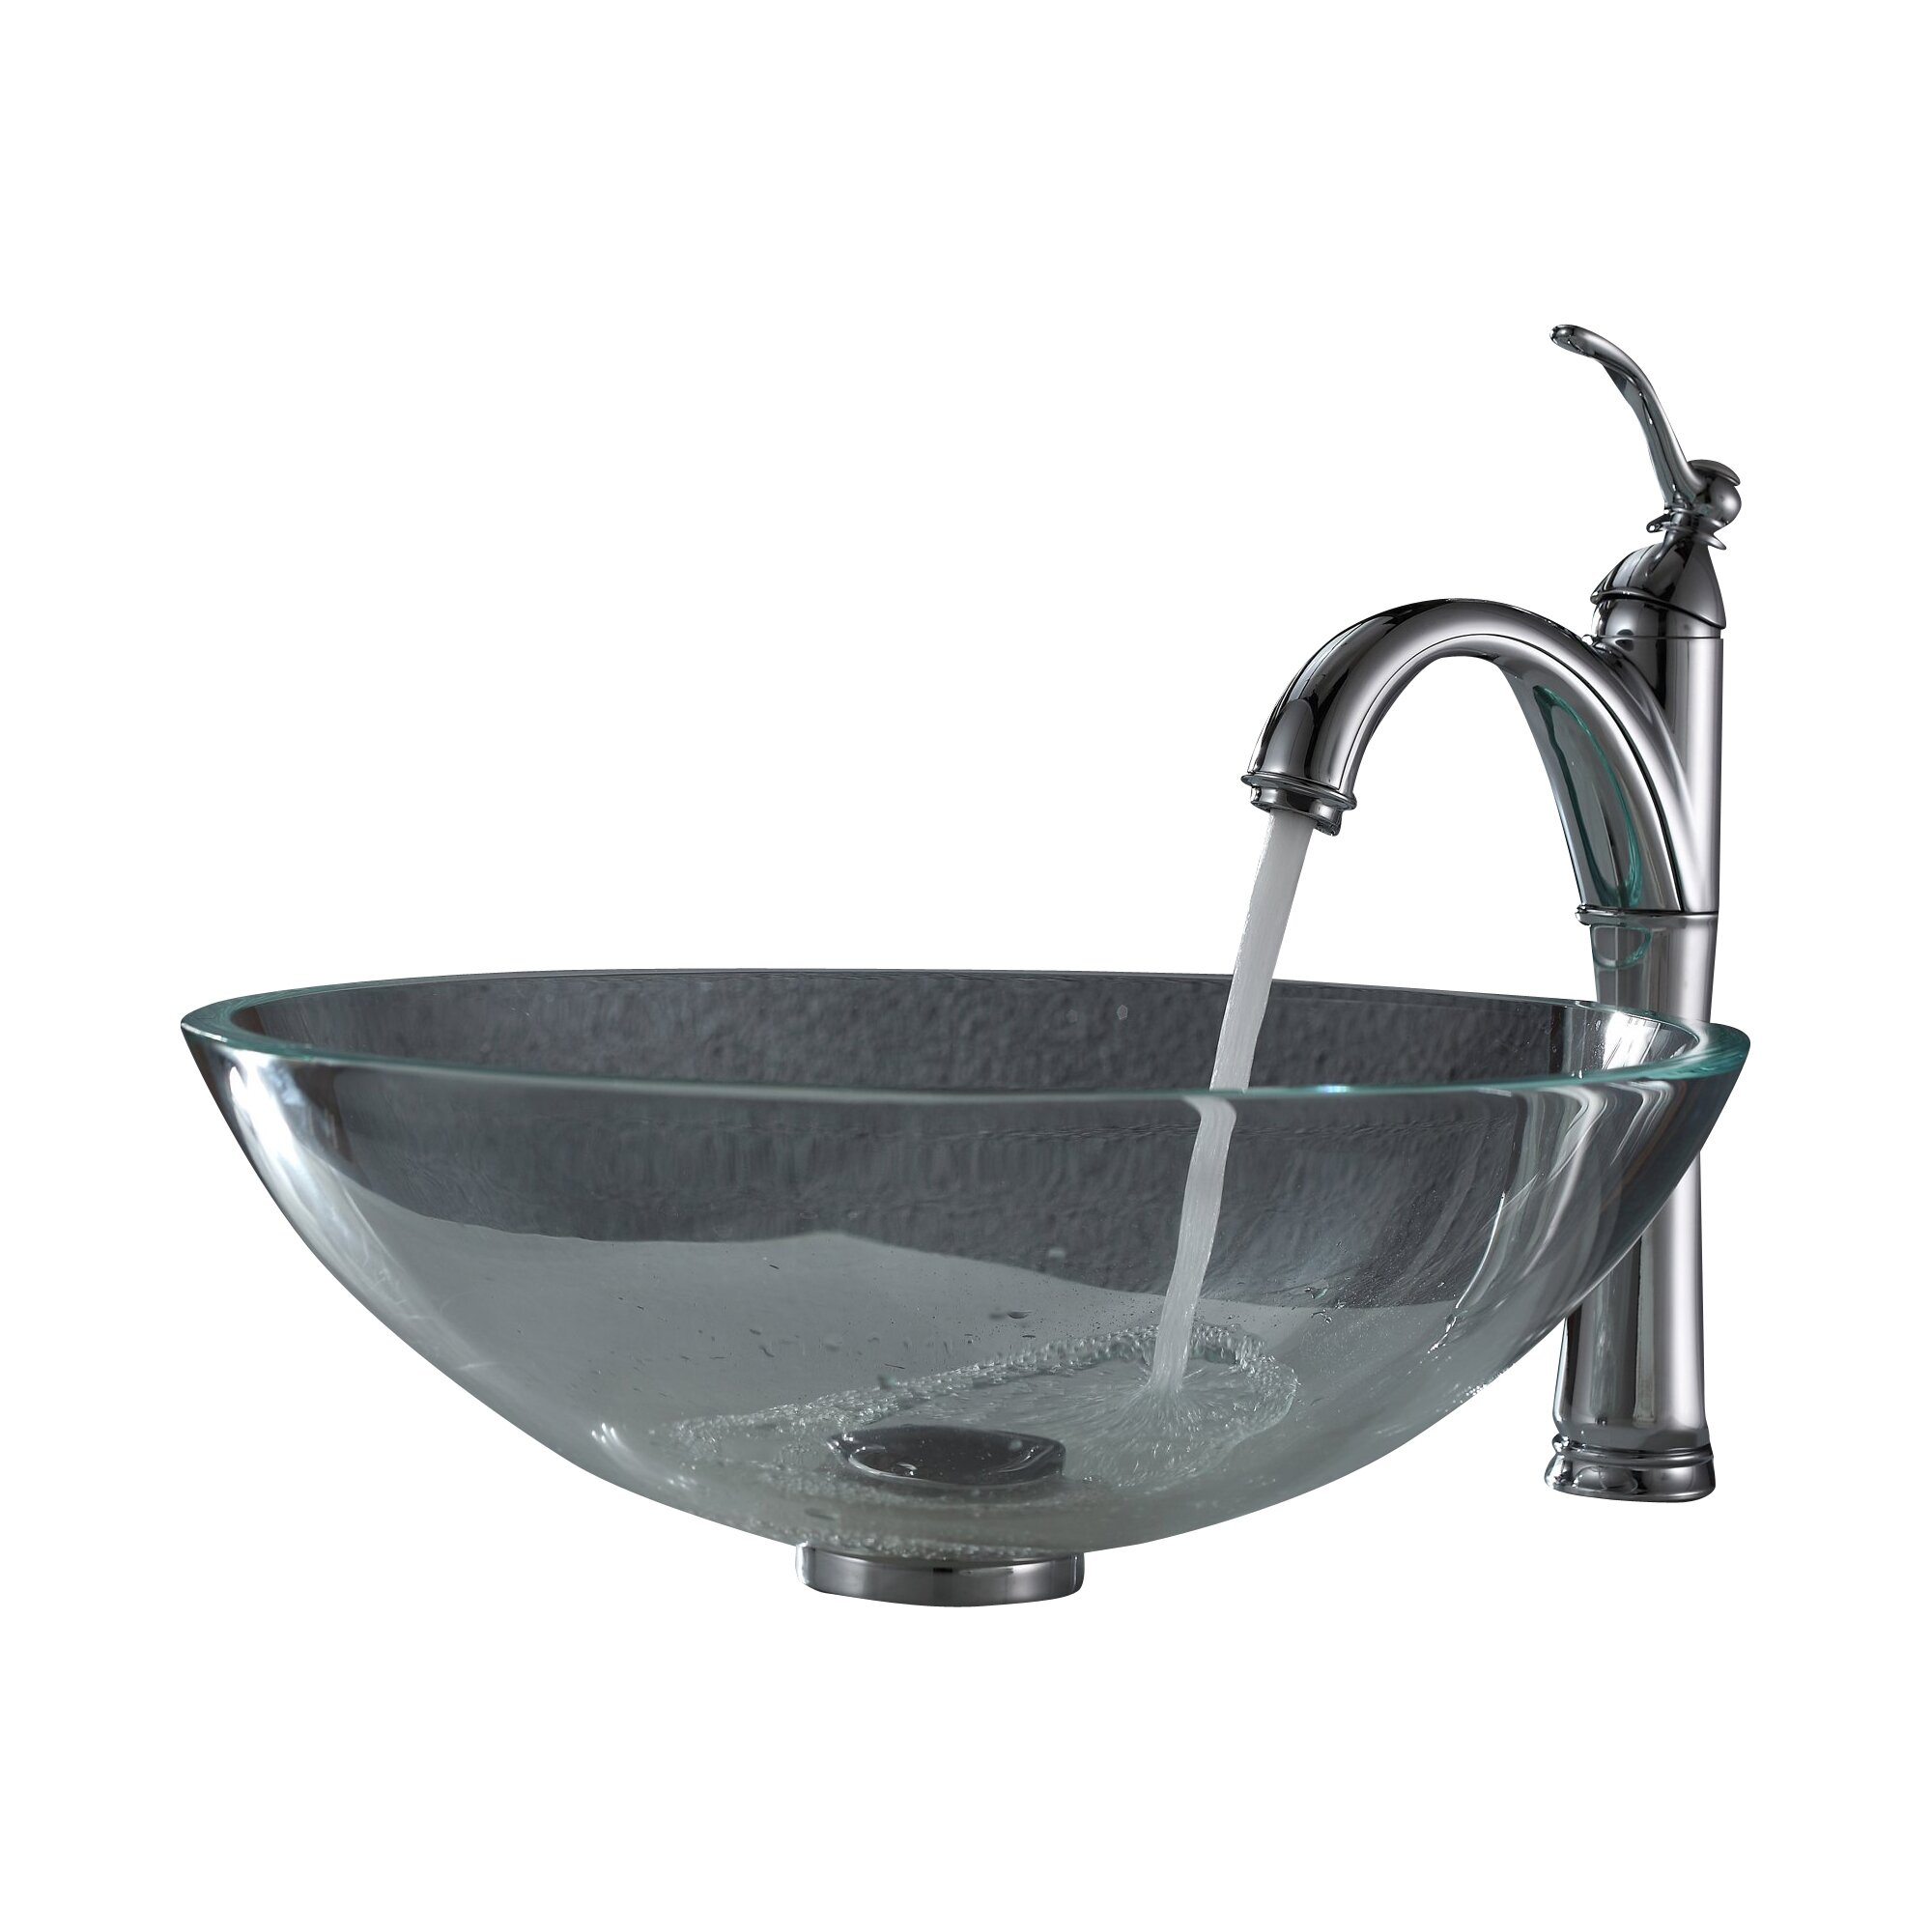 ... Vessel Sink with Pop Up Drain & Mounting Ring & Reviews Wayfair.ca